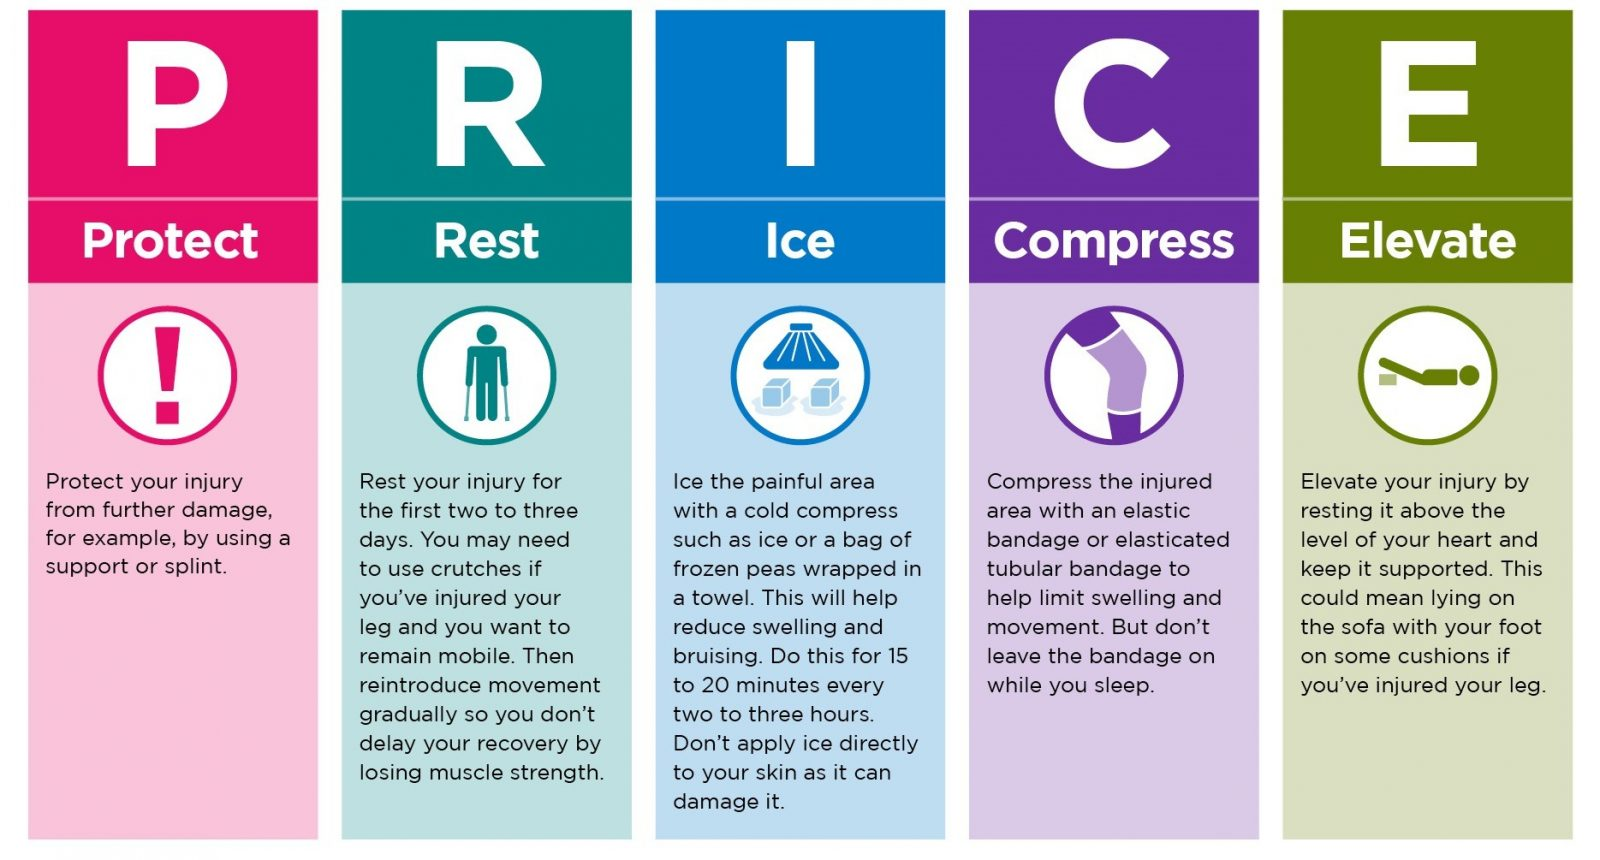 protection-rest-ice-compress-elevate-move physiotherapy